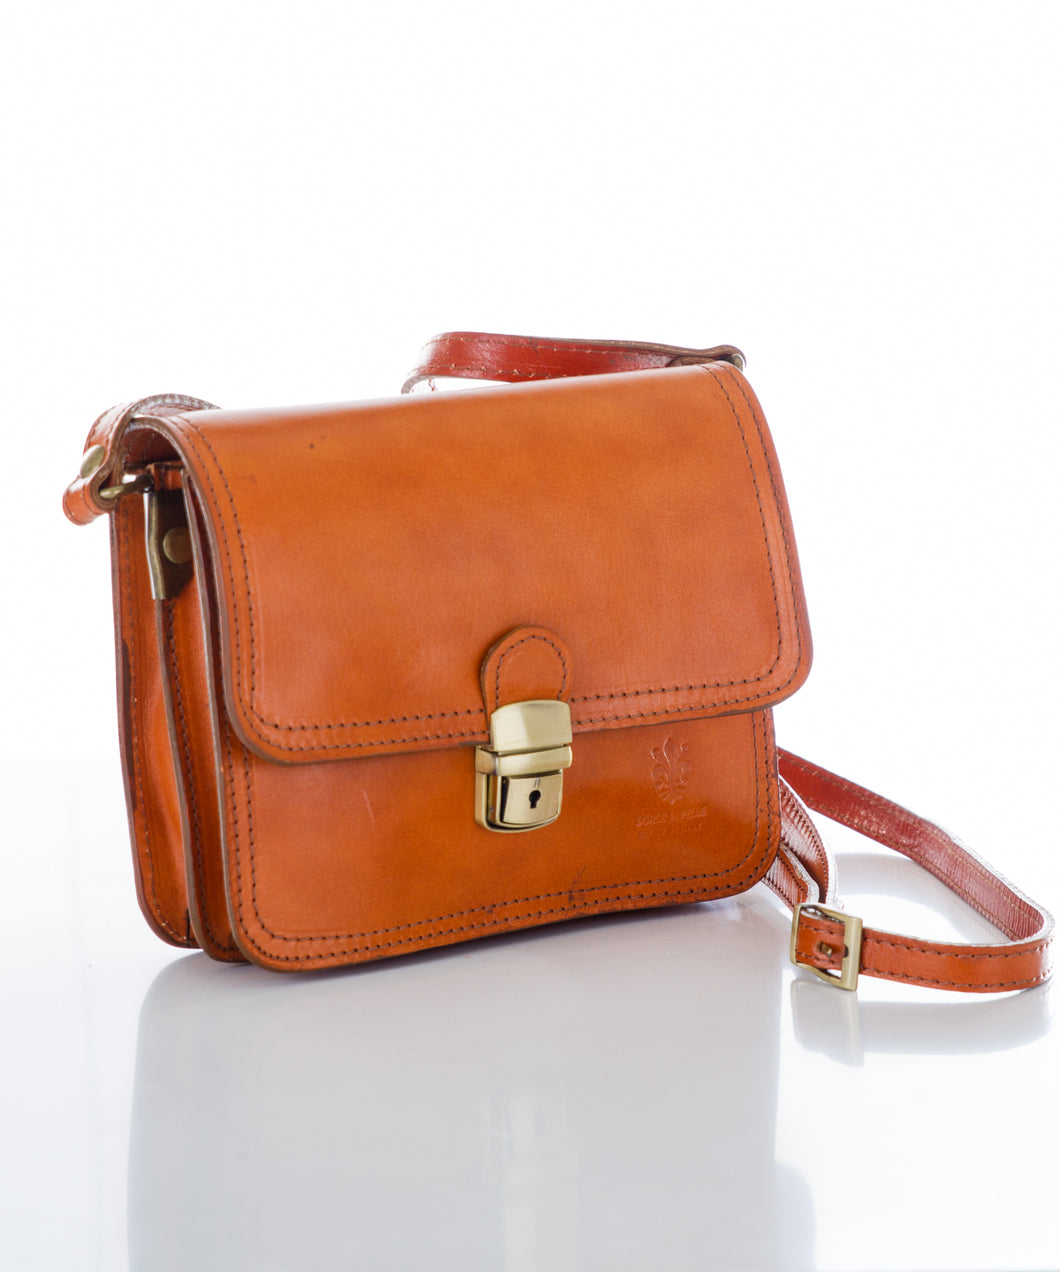 Betulla Anna Crossbody in Tan